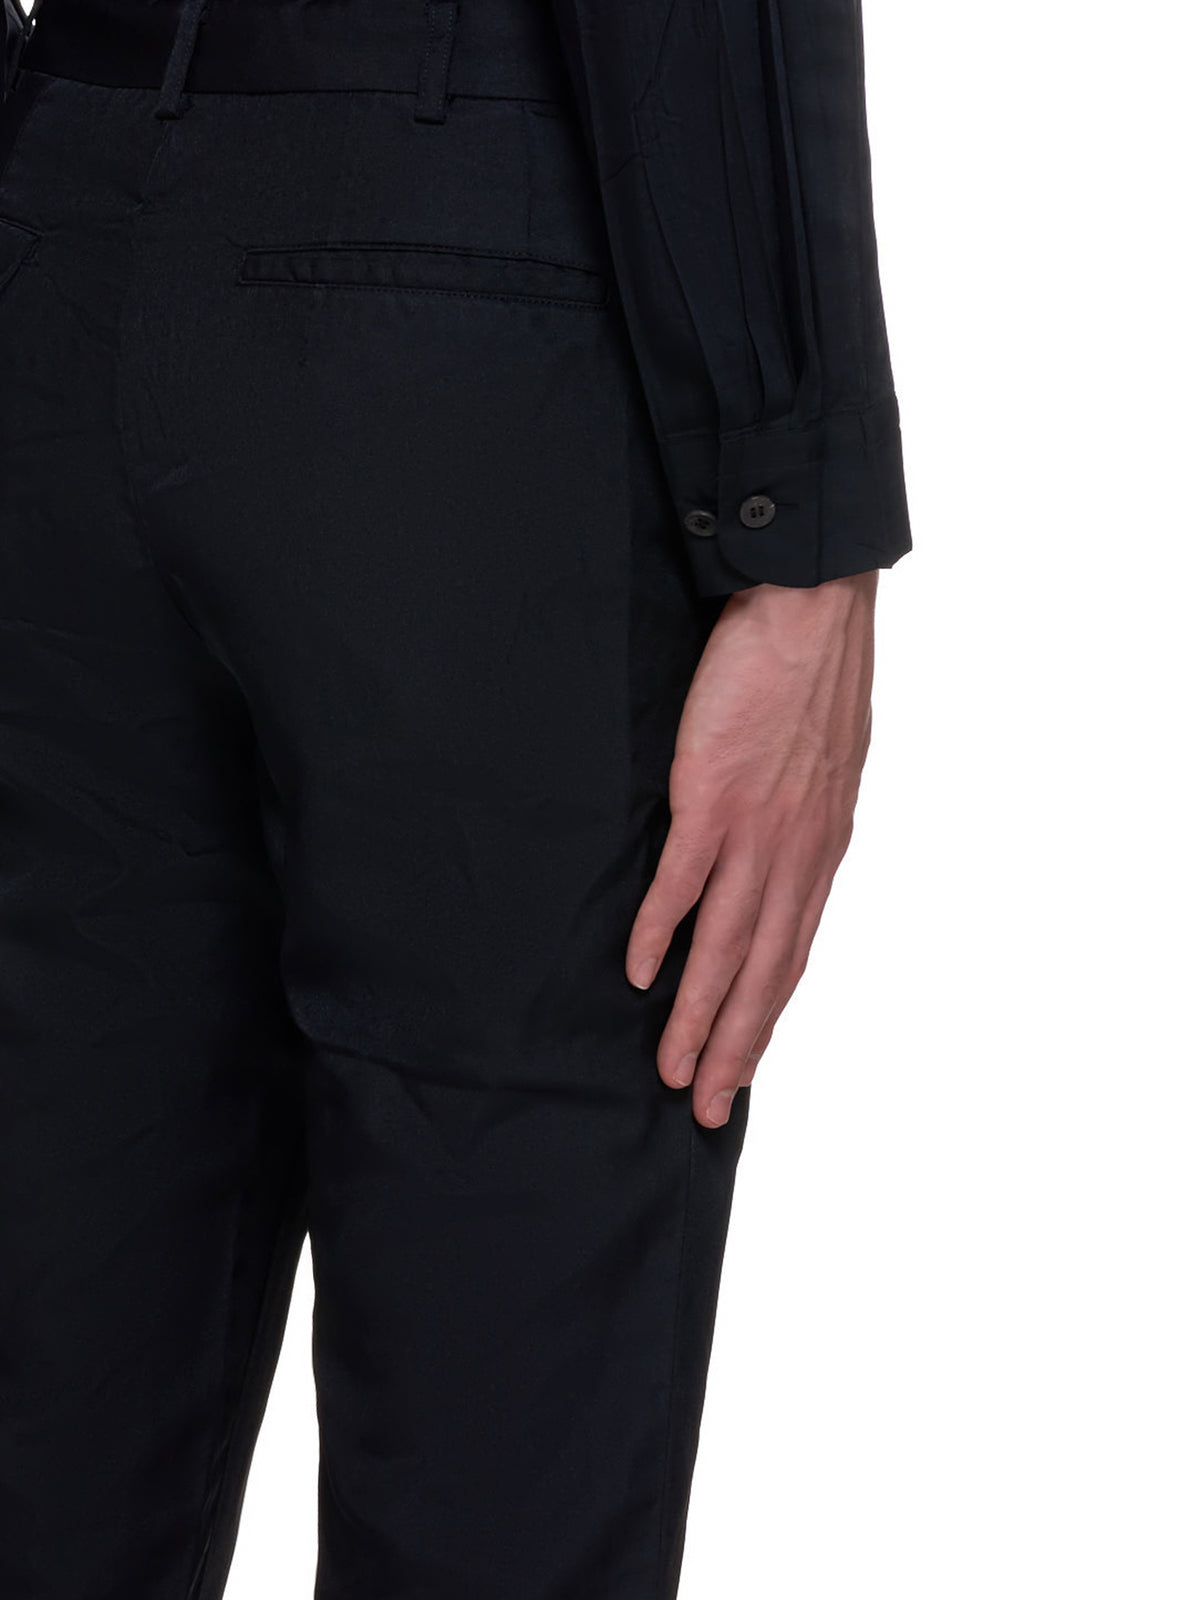 Cropped Wrinkle Trousers (PF-P051-051-BLACK)